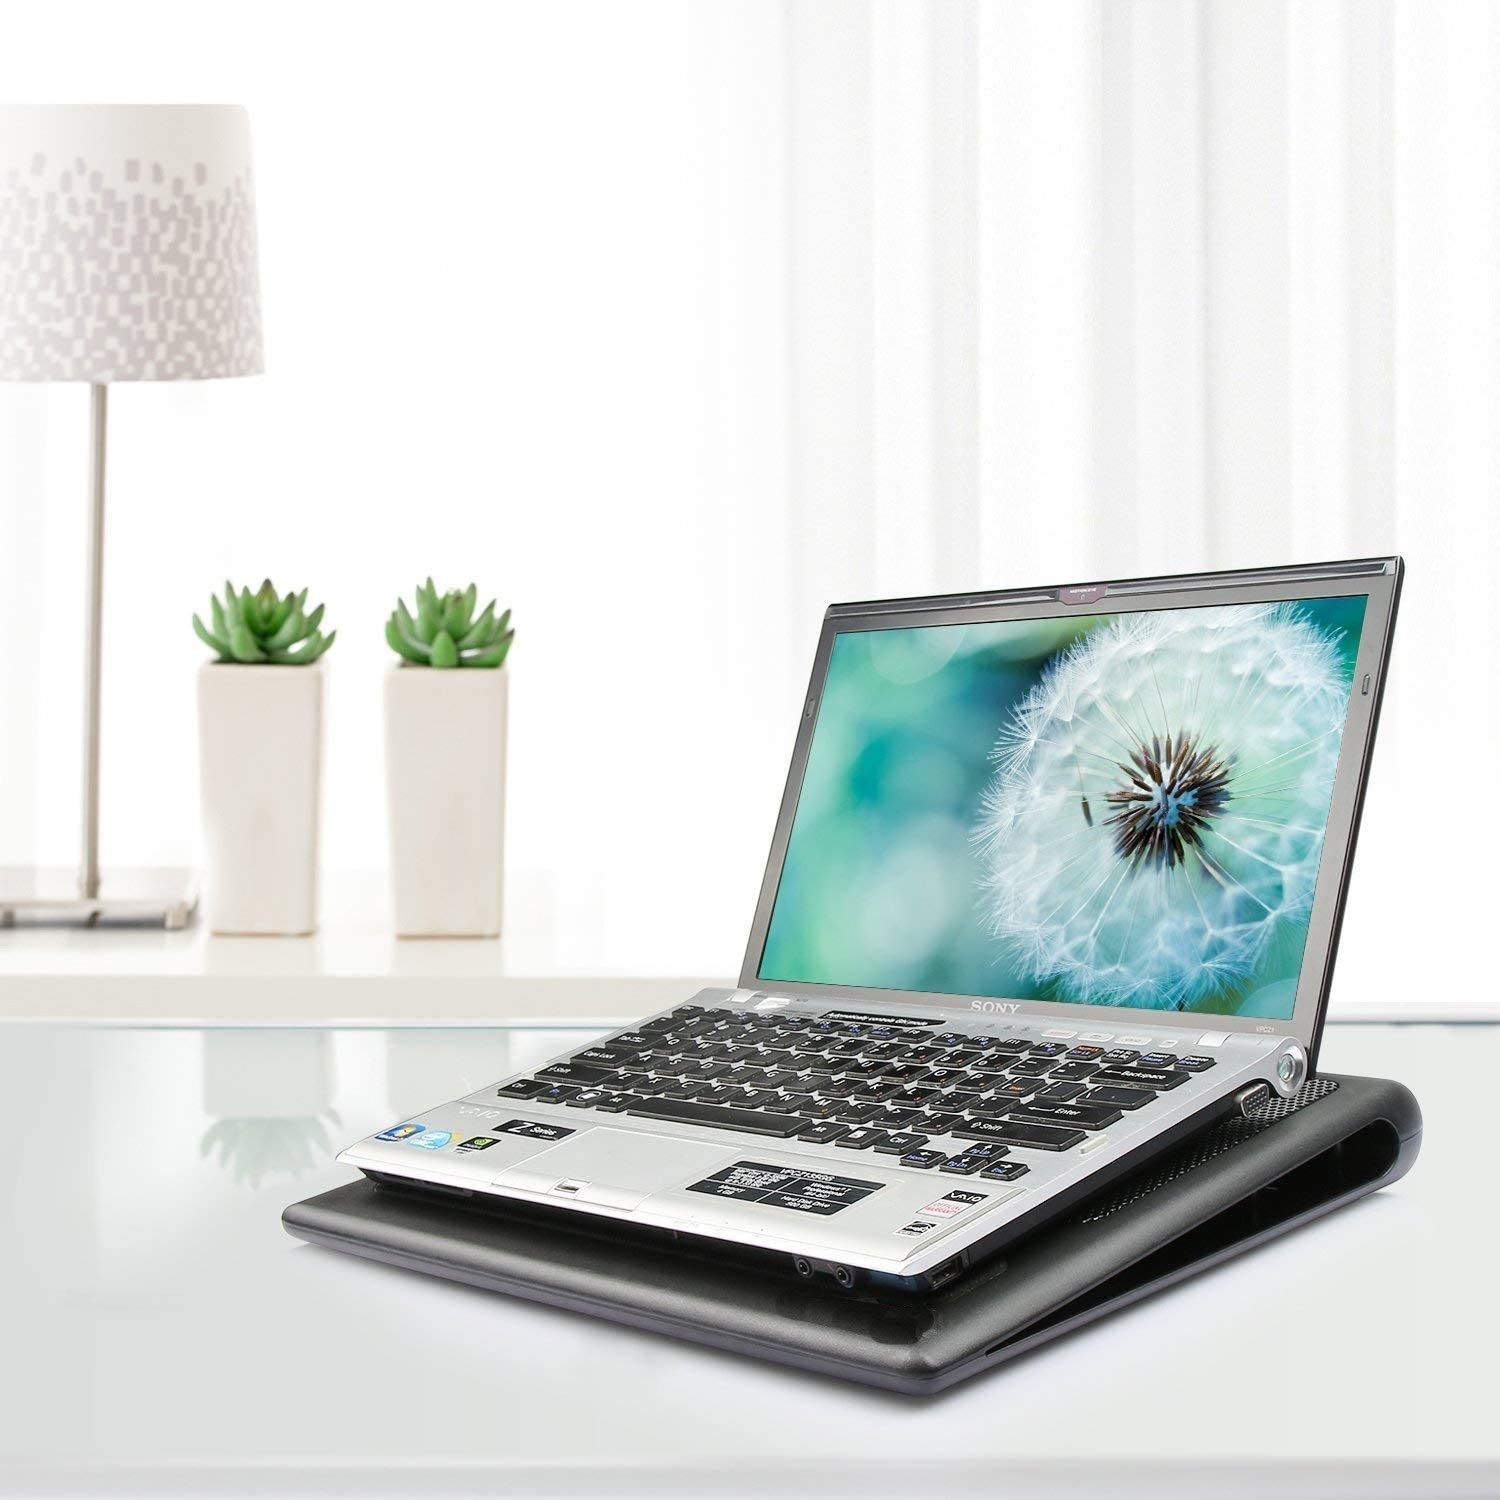 Fits 12-16 Inches DISS Laptop Cooling Pad Portable Ultra-Slim Quiet Laptop Notebook Cooler Cooling Pad Stand with 2 USB Powered Fans